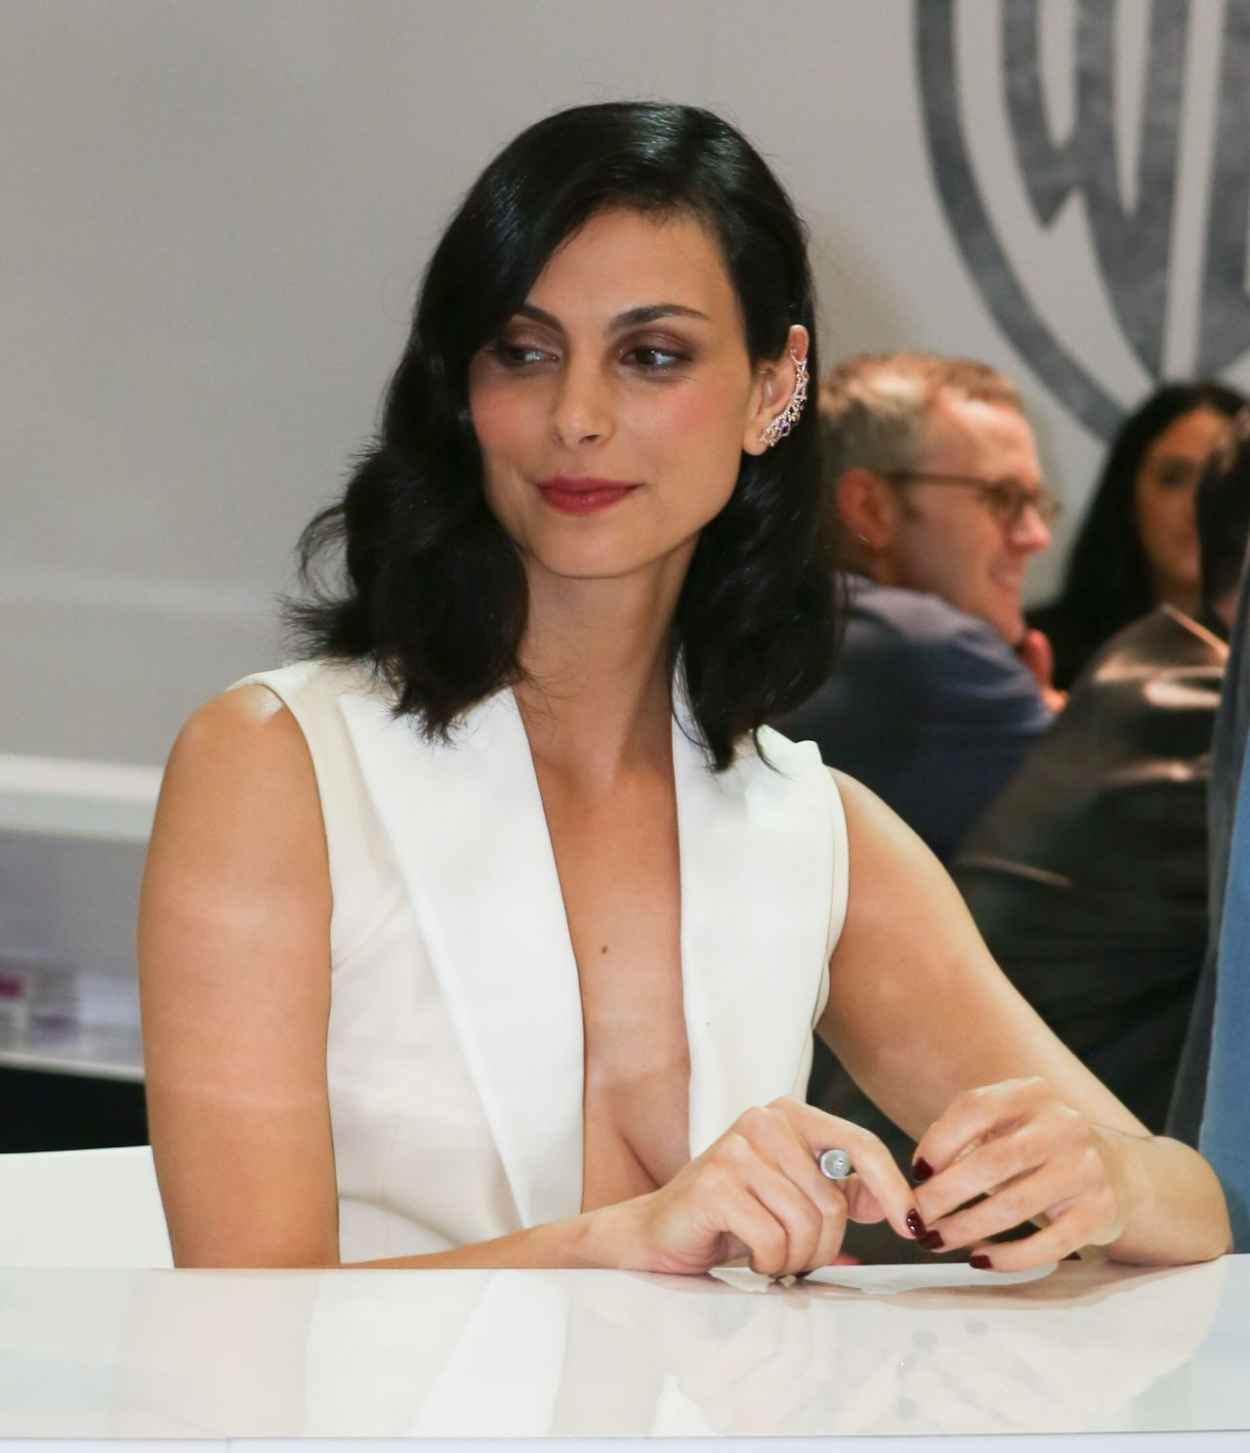 Morena Baccarin - WB Booth at Comic Con in San Diego, July 2015-5